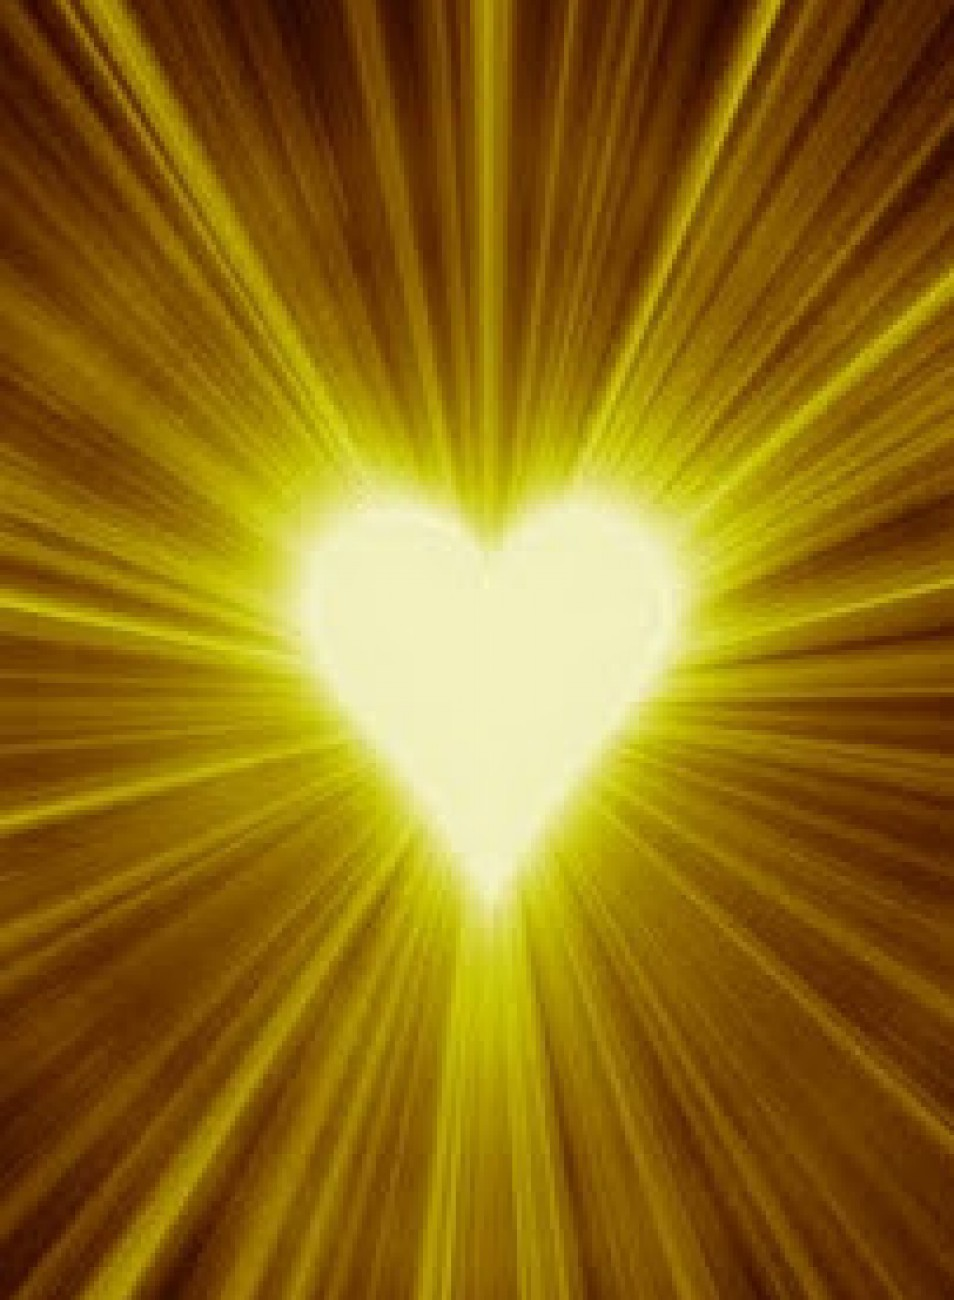 cropped-cropped-heart-rays-of-sunlight4.jpg